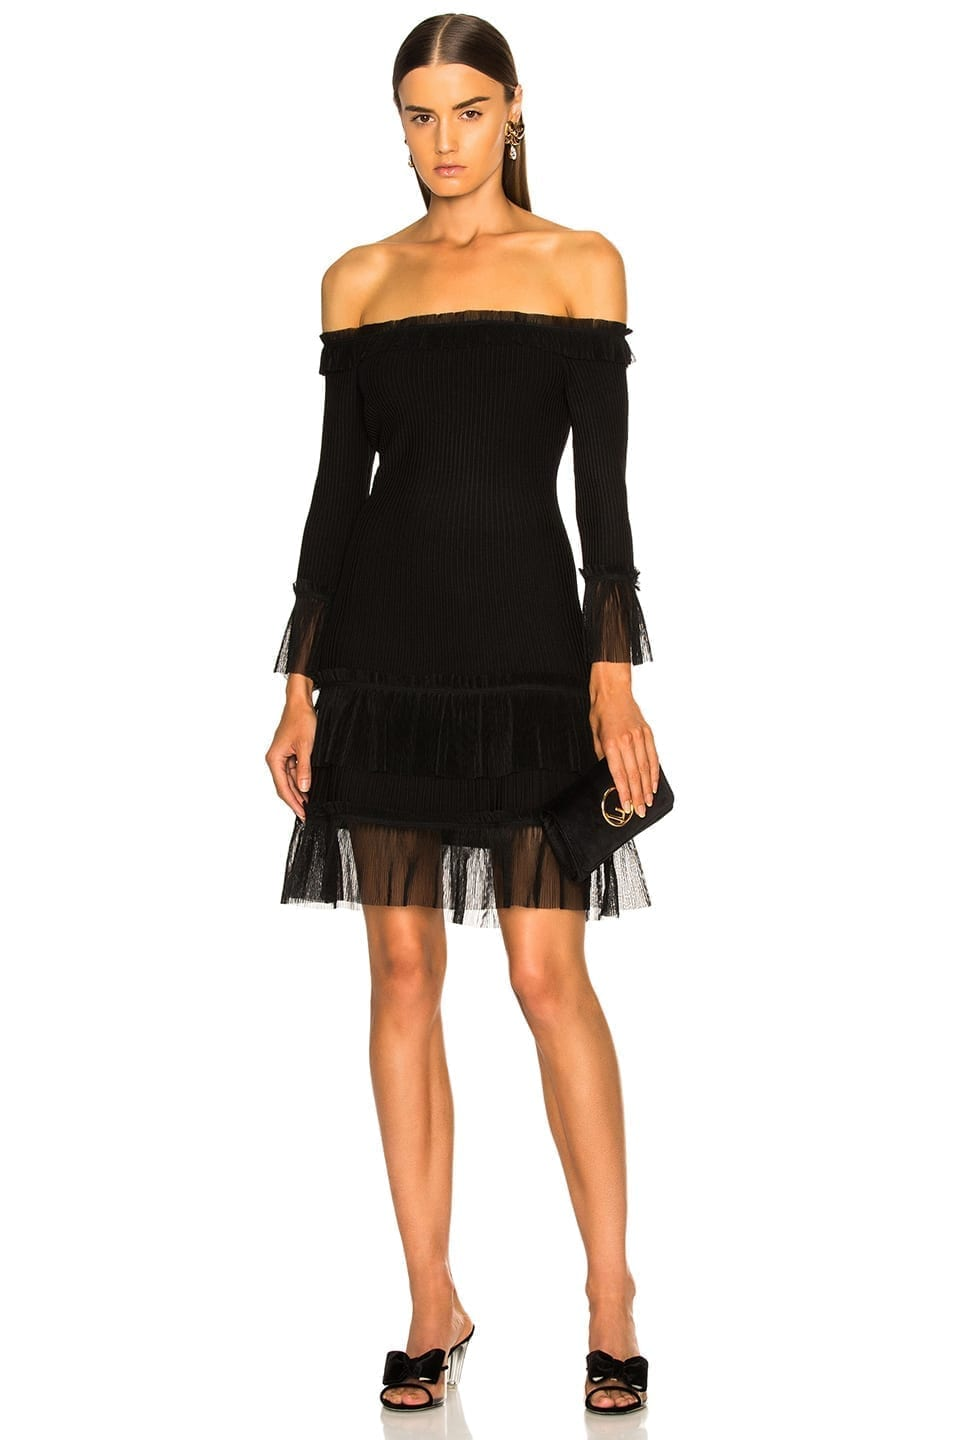 JONATHAN SIMKHAI Pleated Off Shoulder Fit and Flare Black Dress